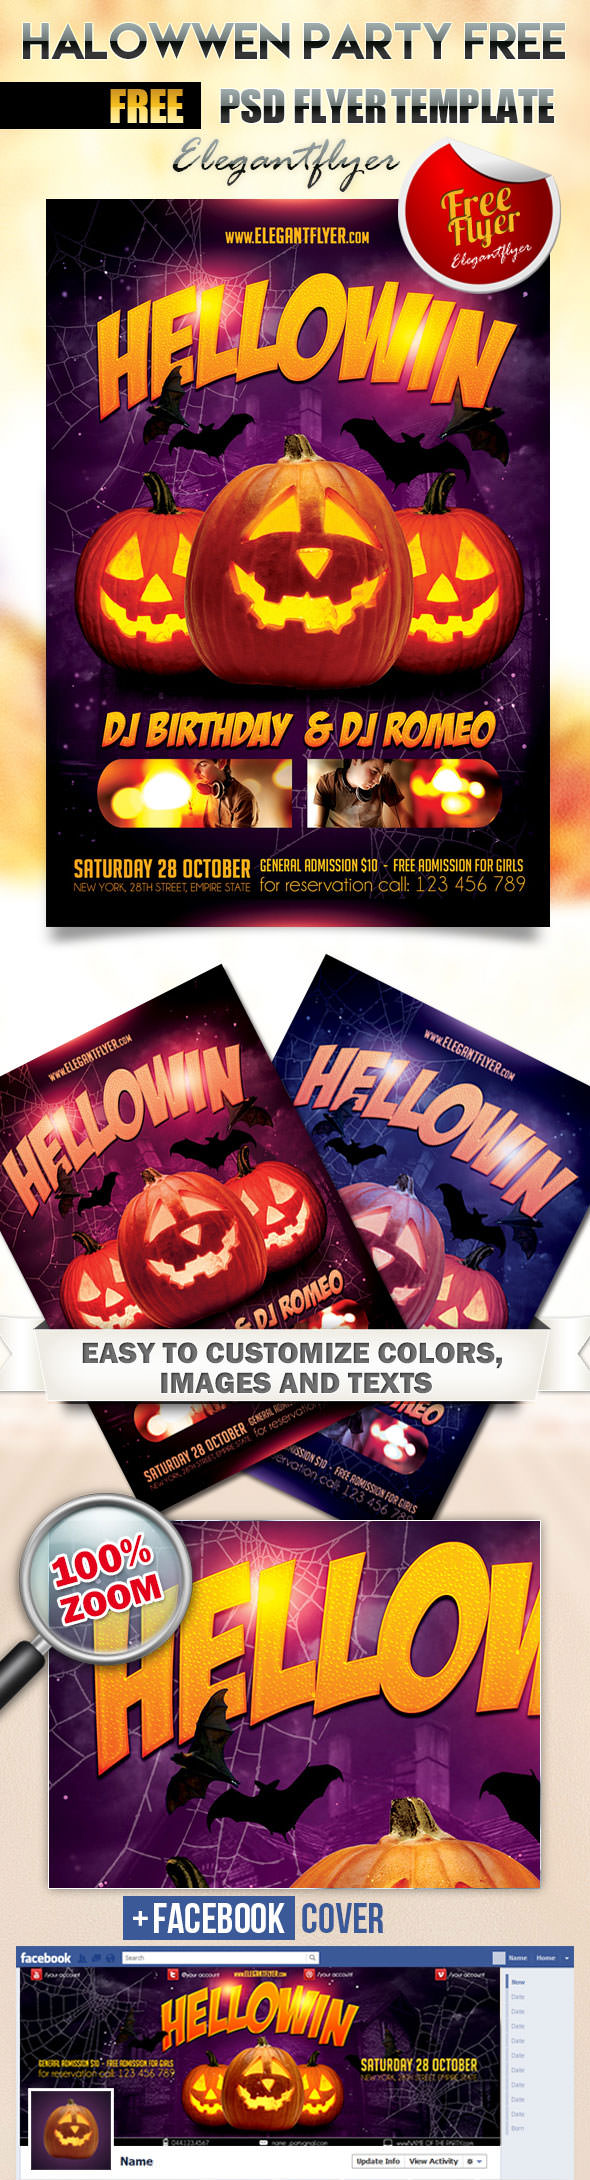 Free-Halloween-Party-Flyer-PSD-Template-and-Facebook-Cover